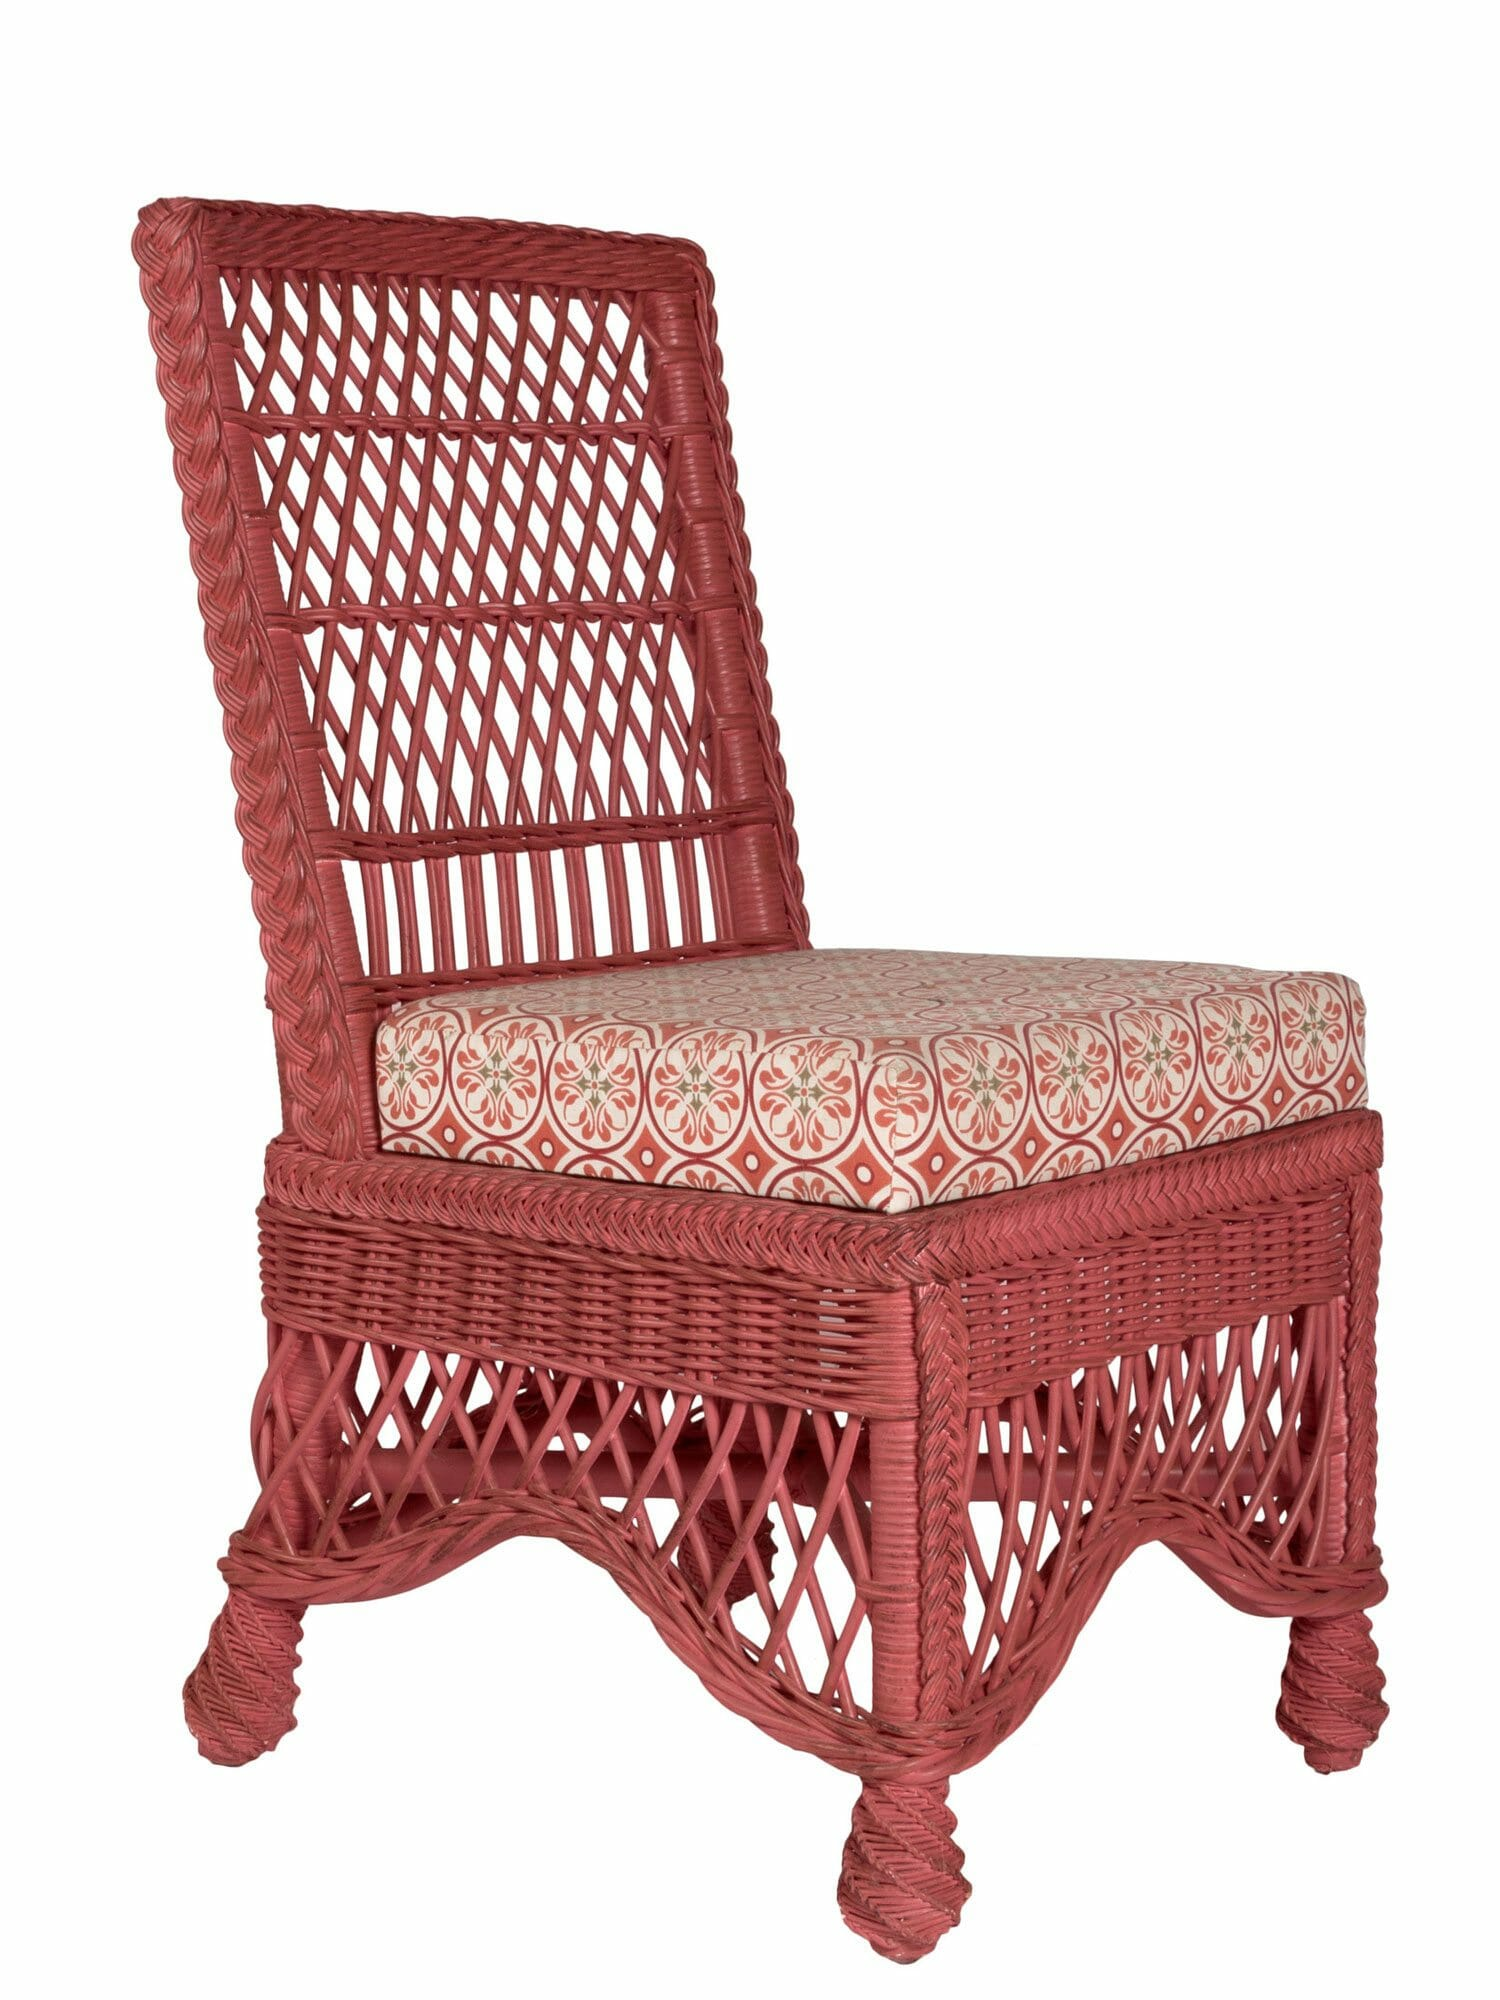 Wicker Side Chair Easton Wicker Dining Side Chair Cottage Home